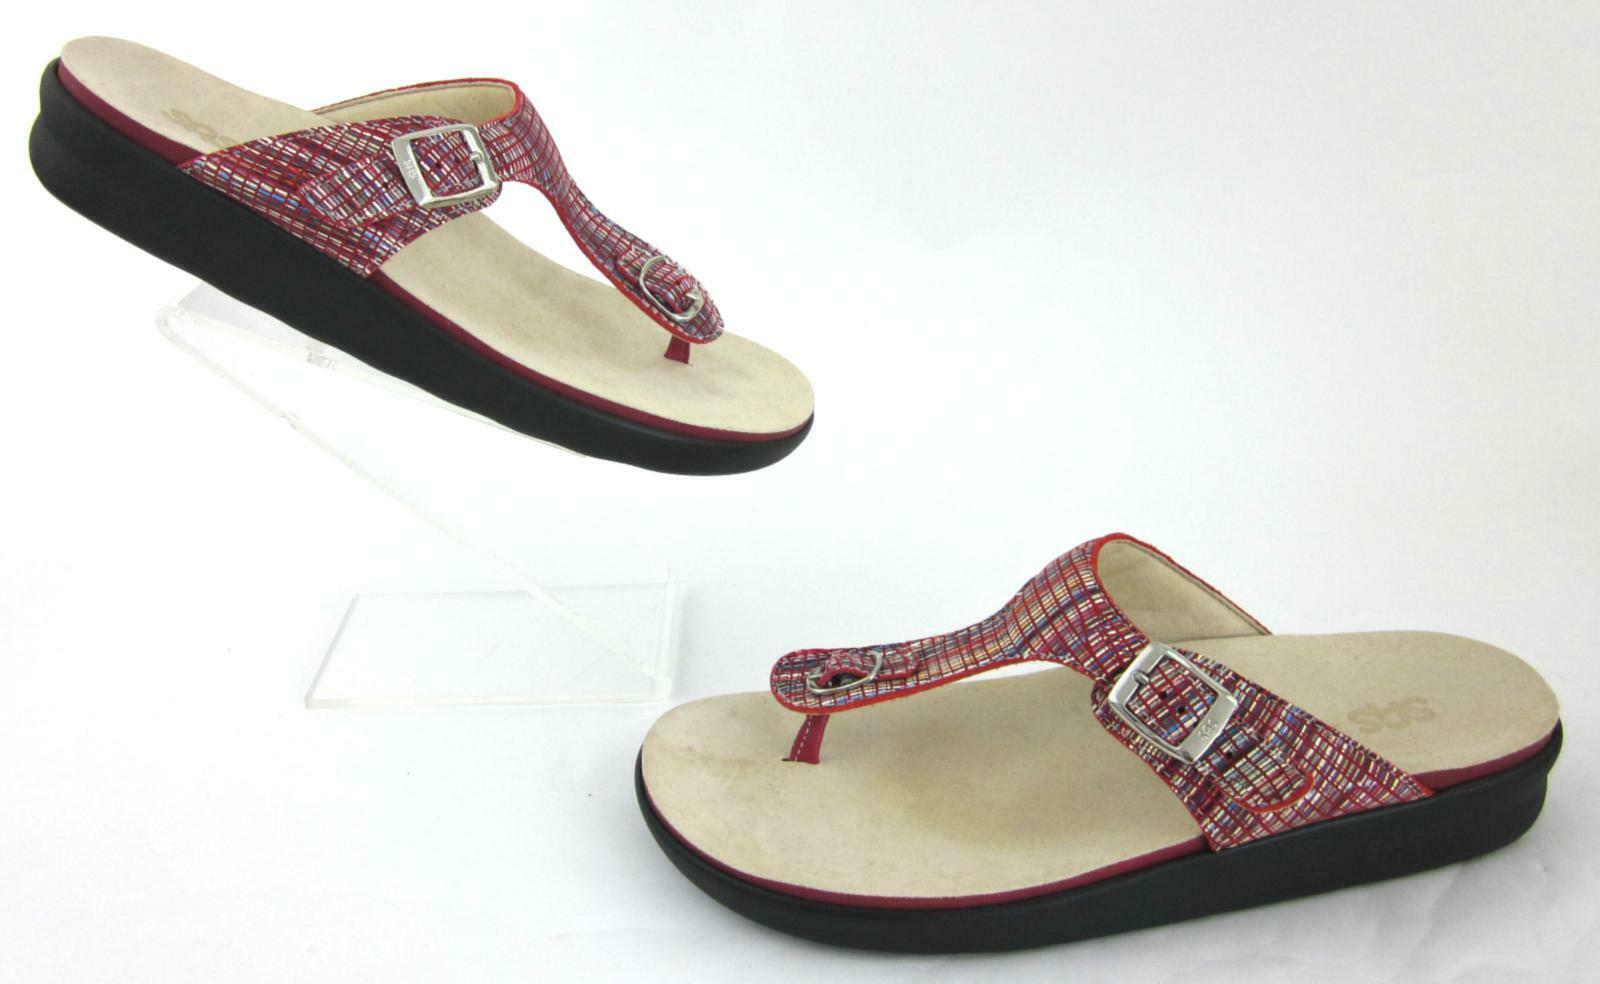 SAS 'Sanibel' Toe Post Sandals Rainbow Red Leather US 12M Mint Condition